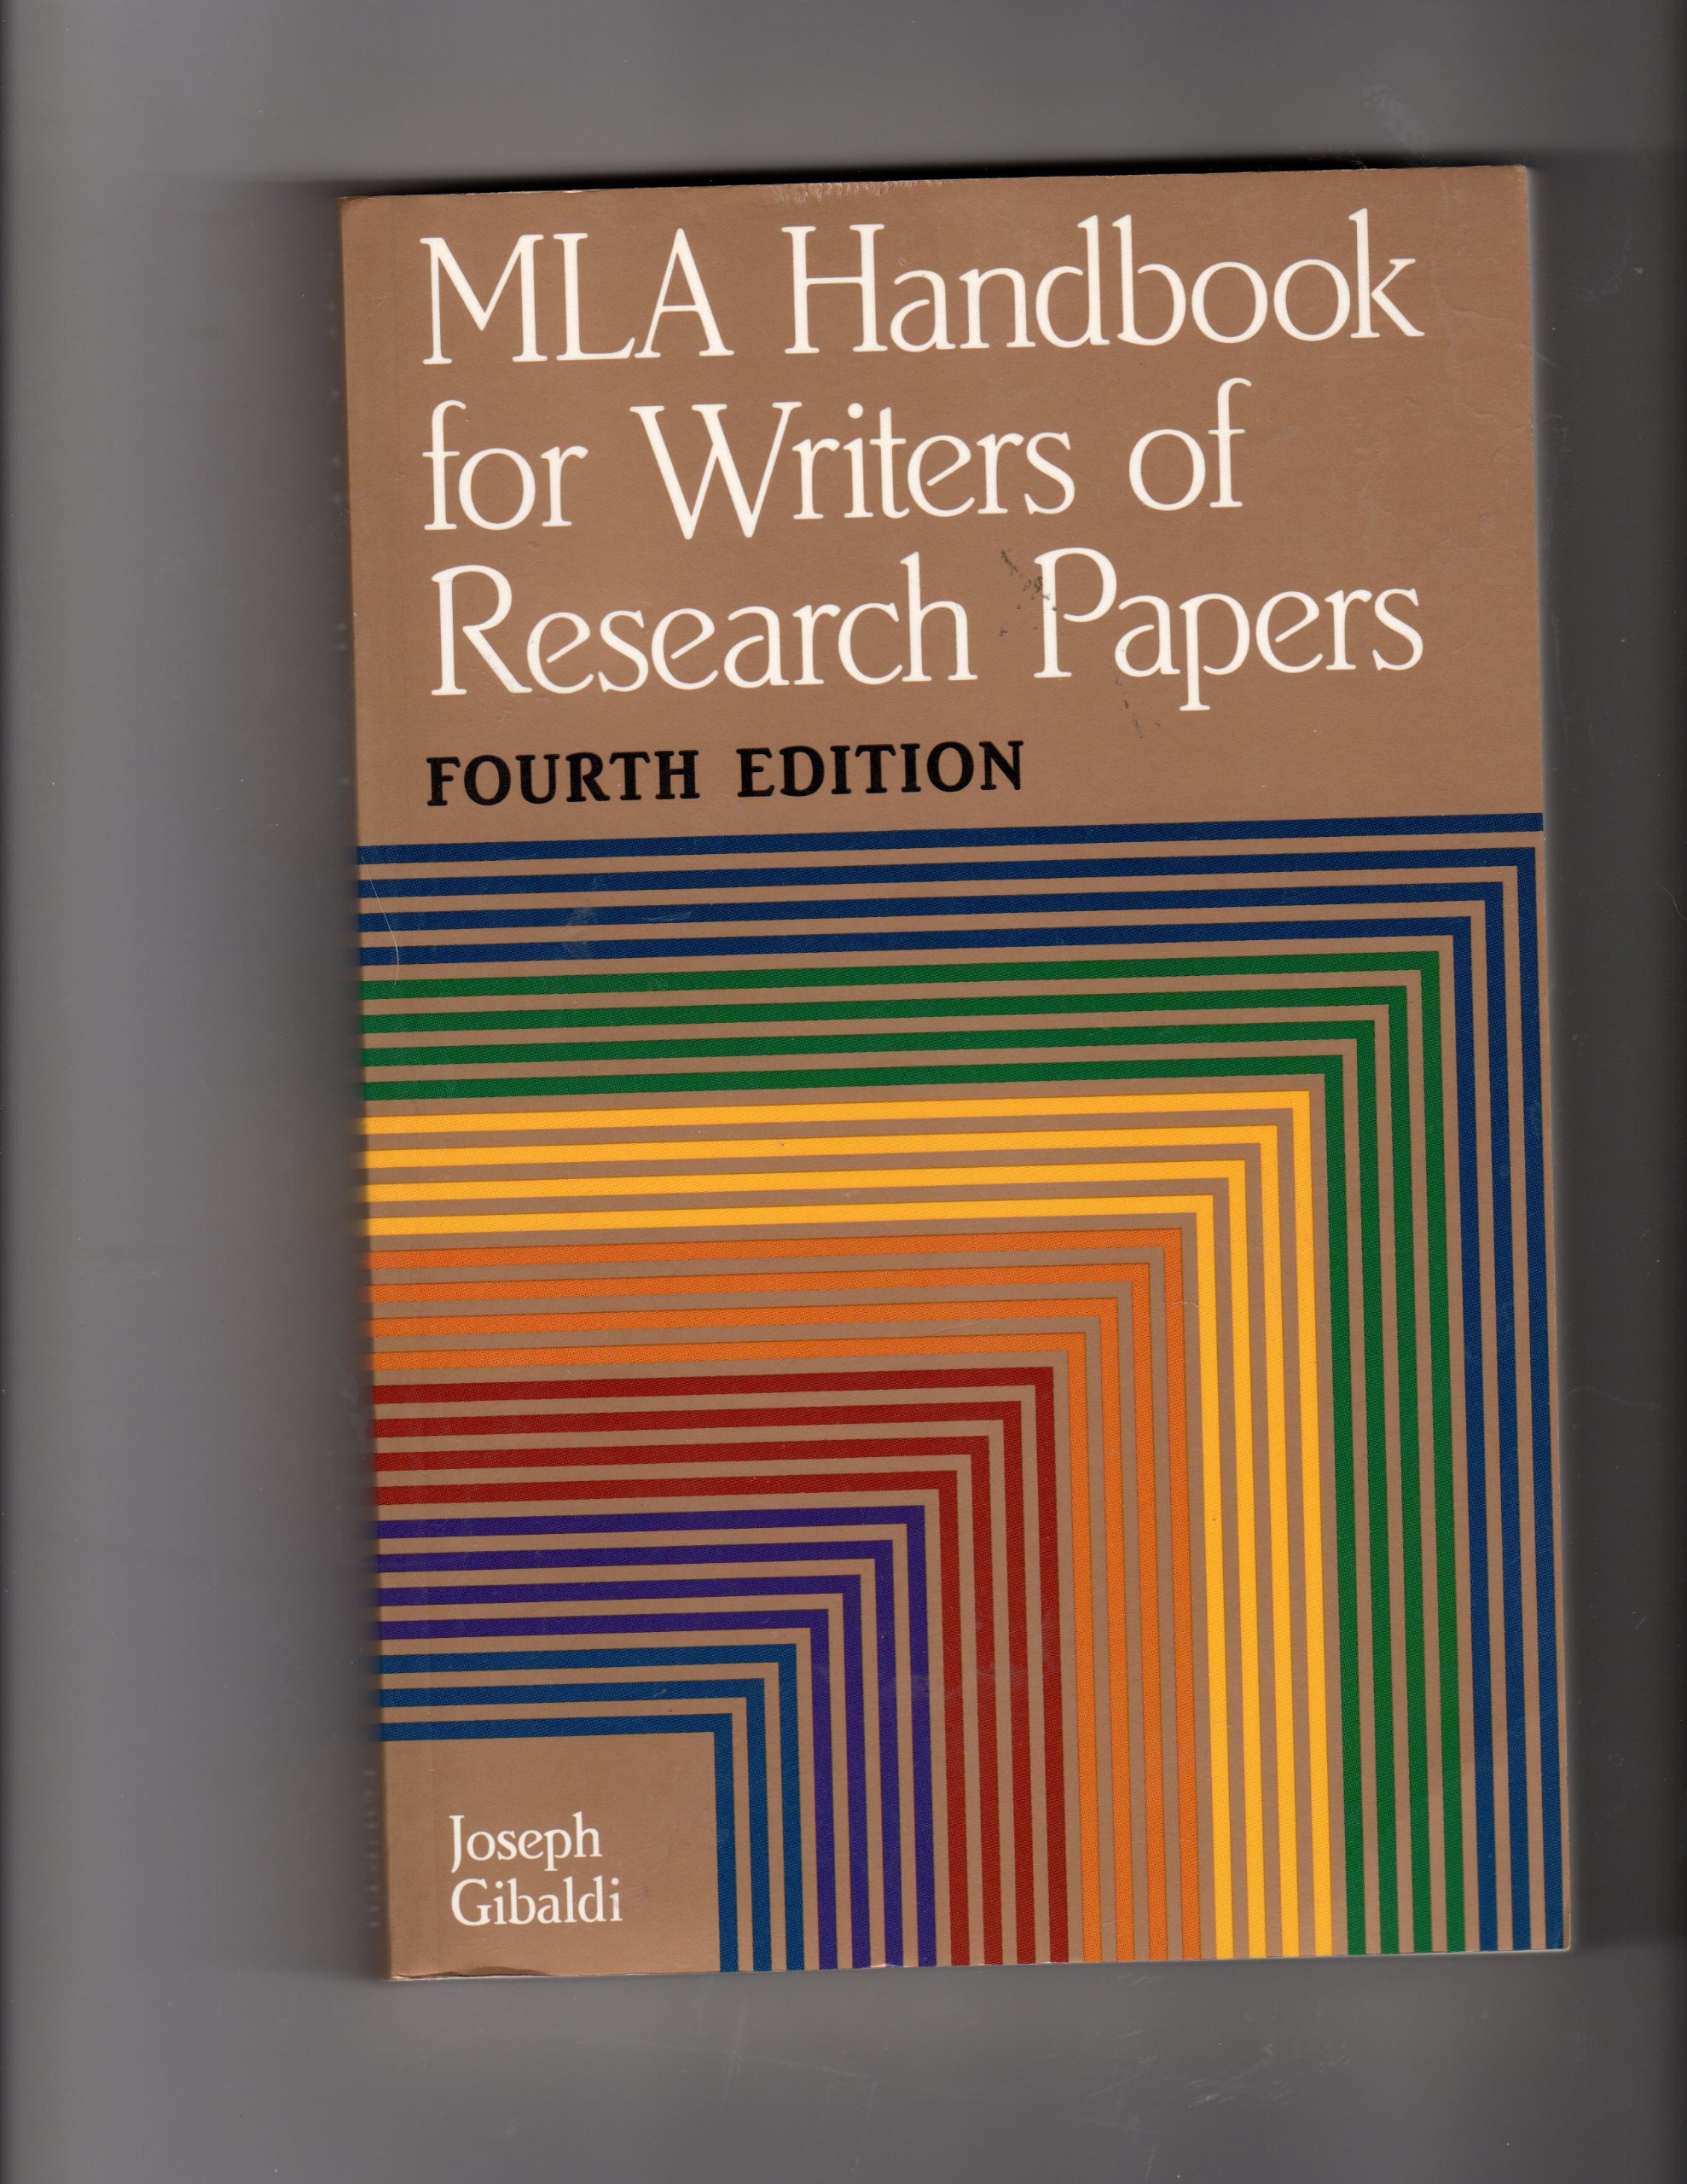 002 Research Paper 91or7esc2gl Mla Handbook For Writers Impressive Of Papers 7th Edition 8th Pdf Free Download Joseph Gibaldi 6th Full